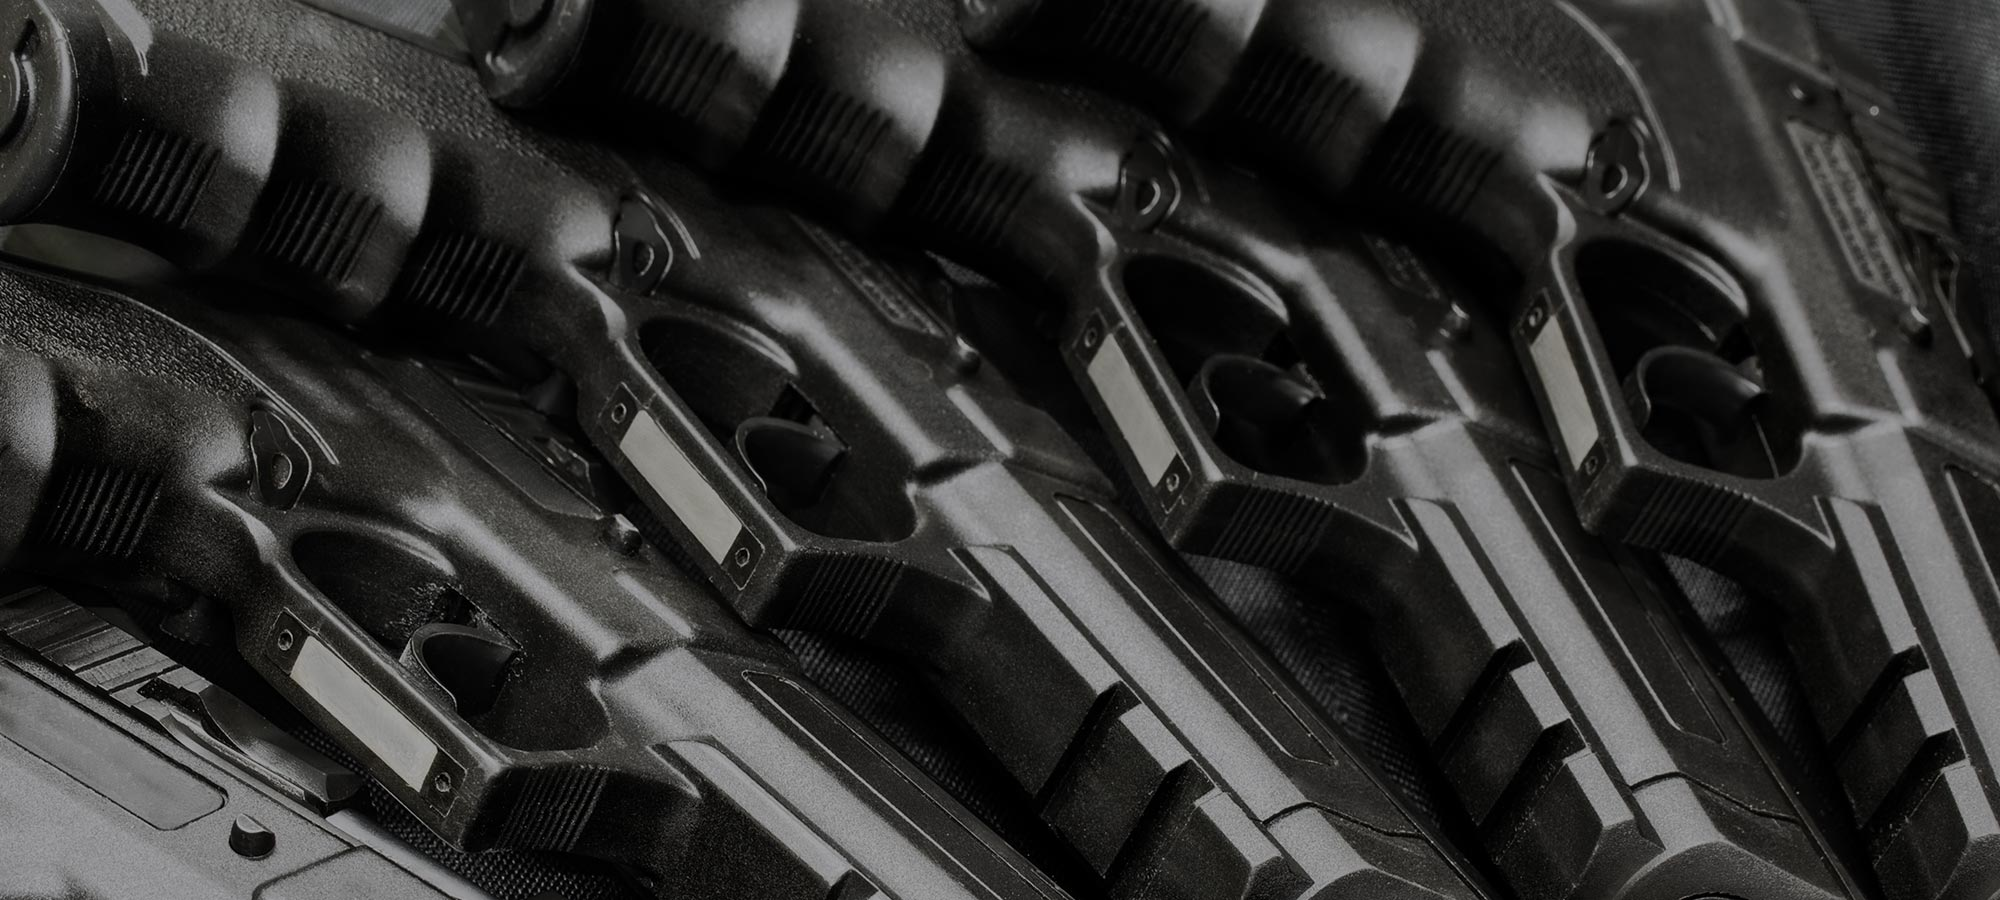 Firearms Distribution Software